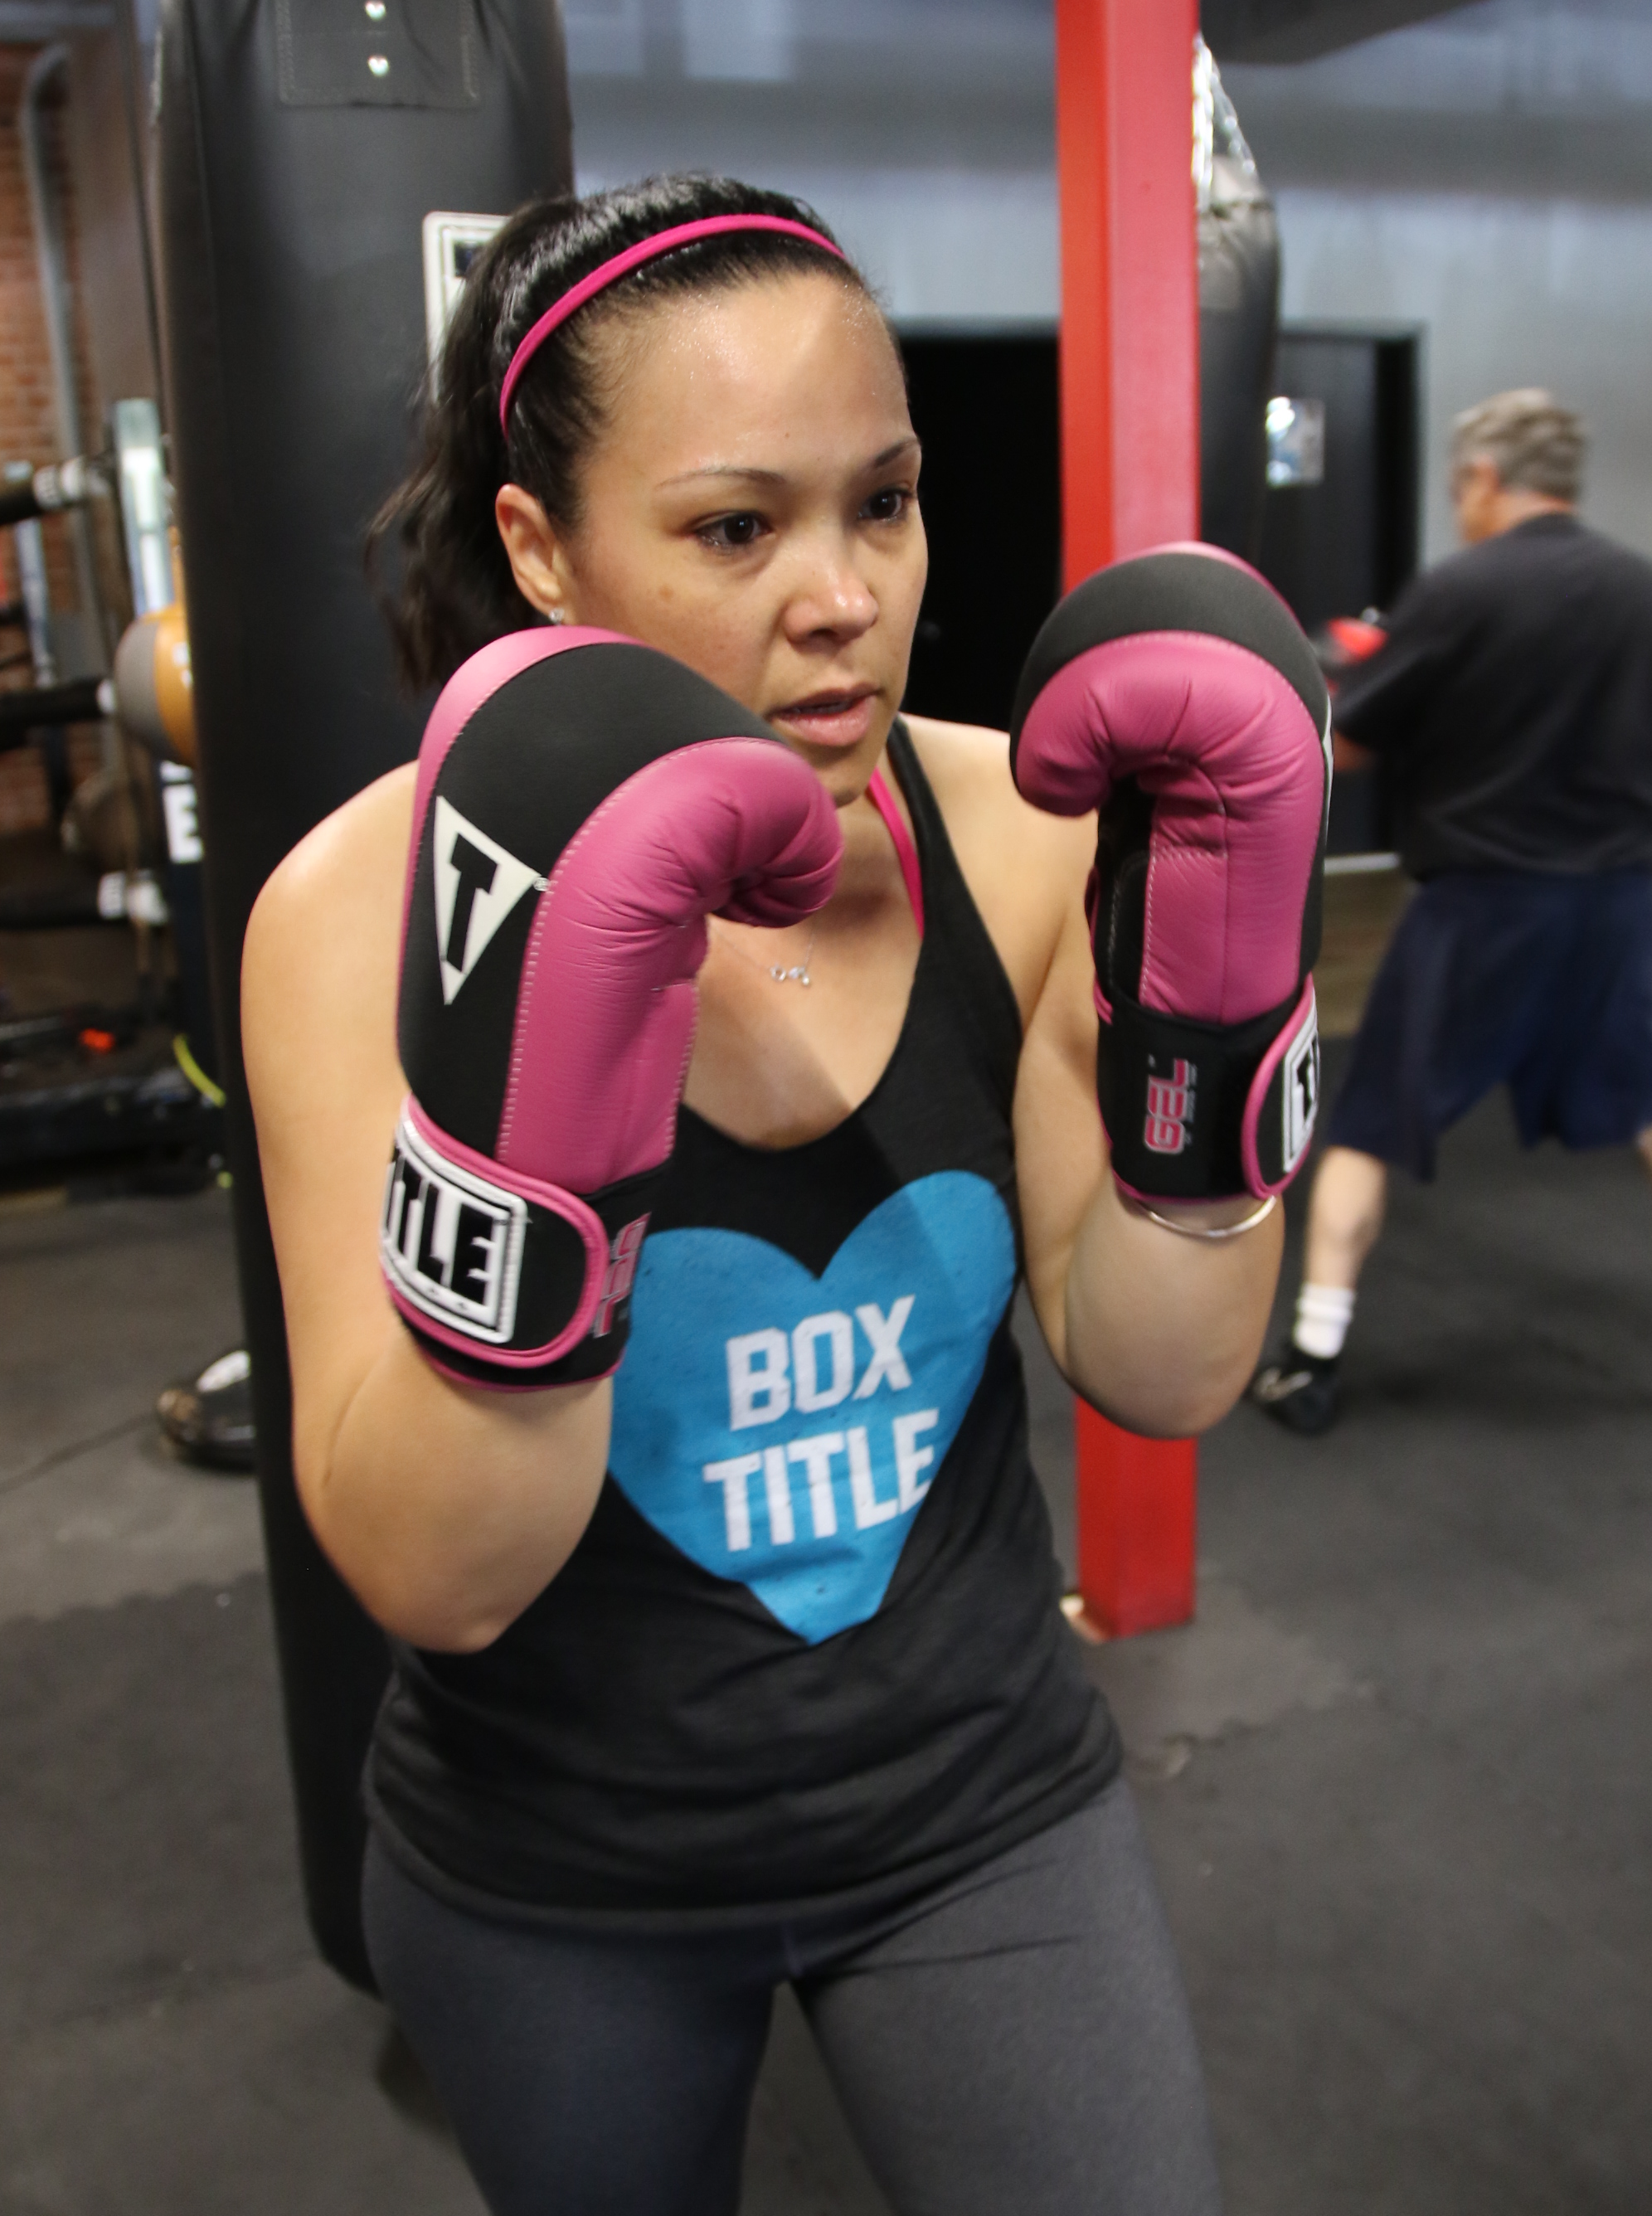 LT Rosario engaged in boxing